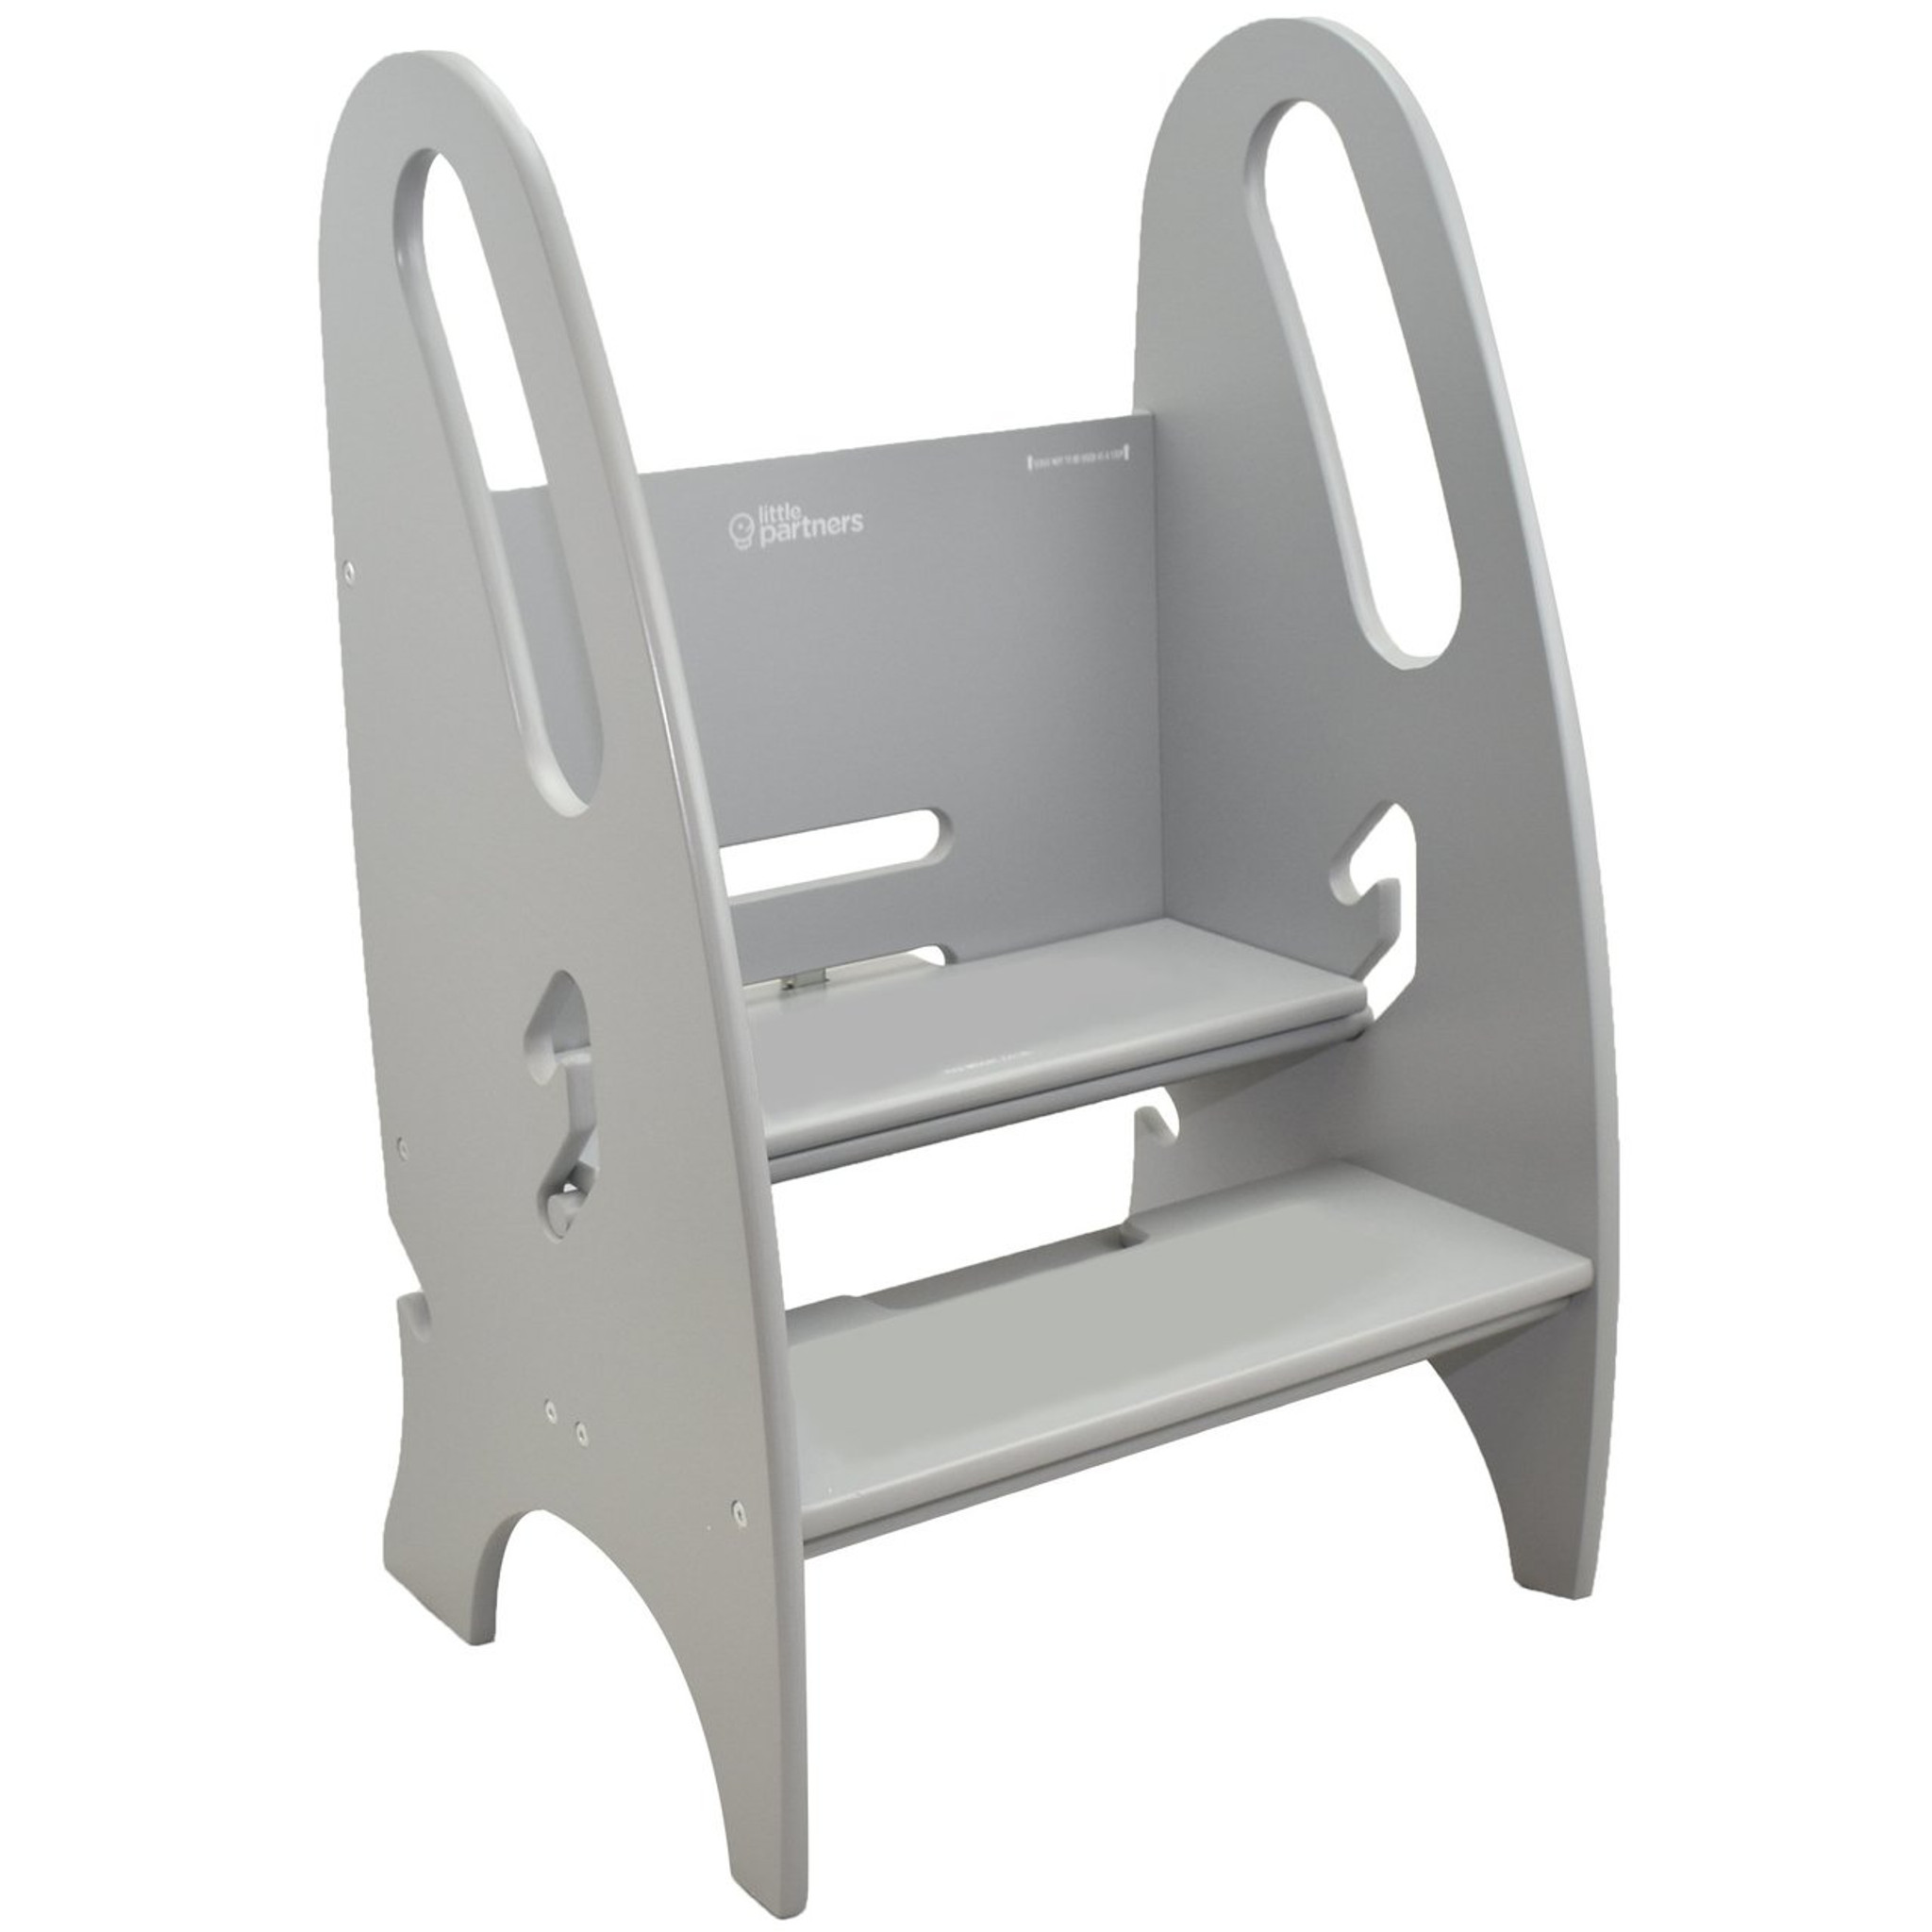 3 In 1 Adjustable Height Step Stool For Kids